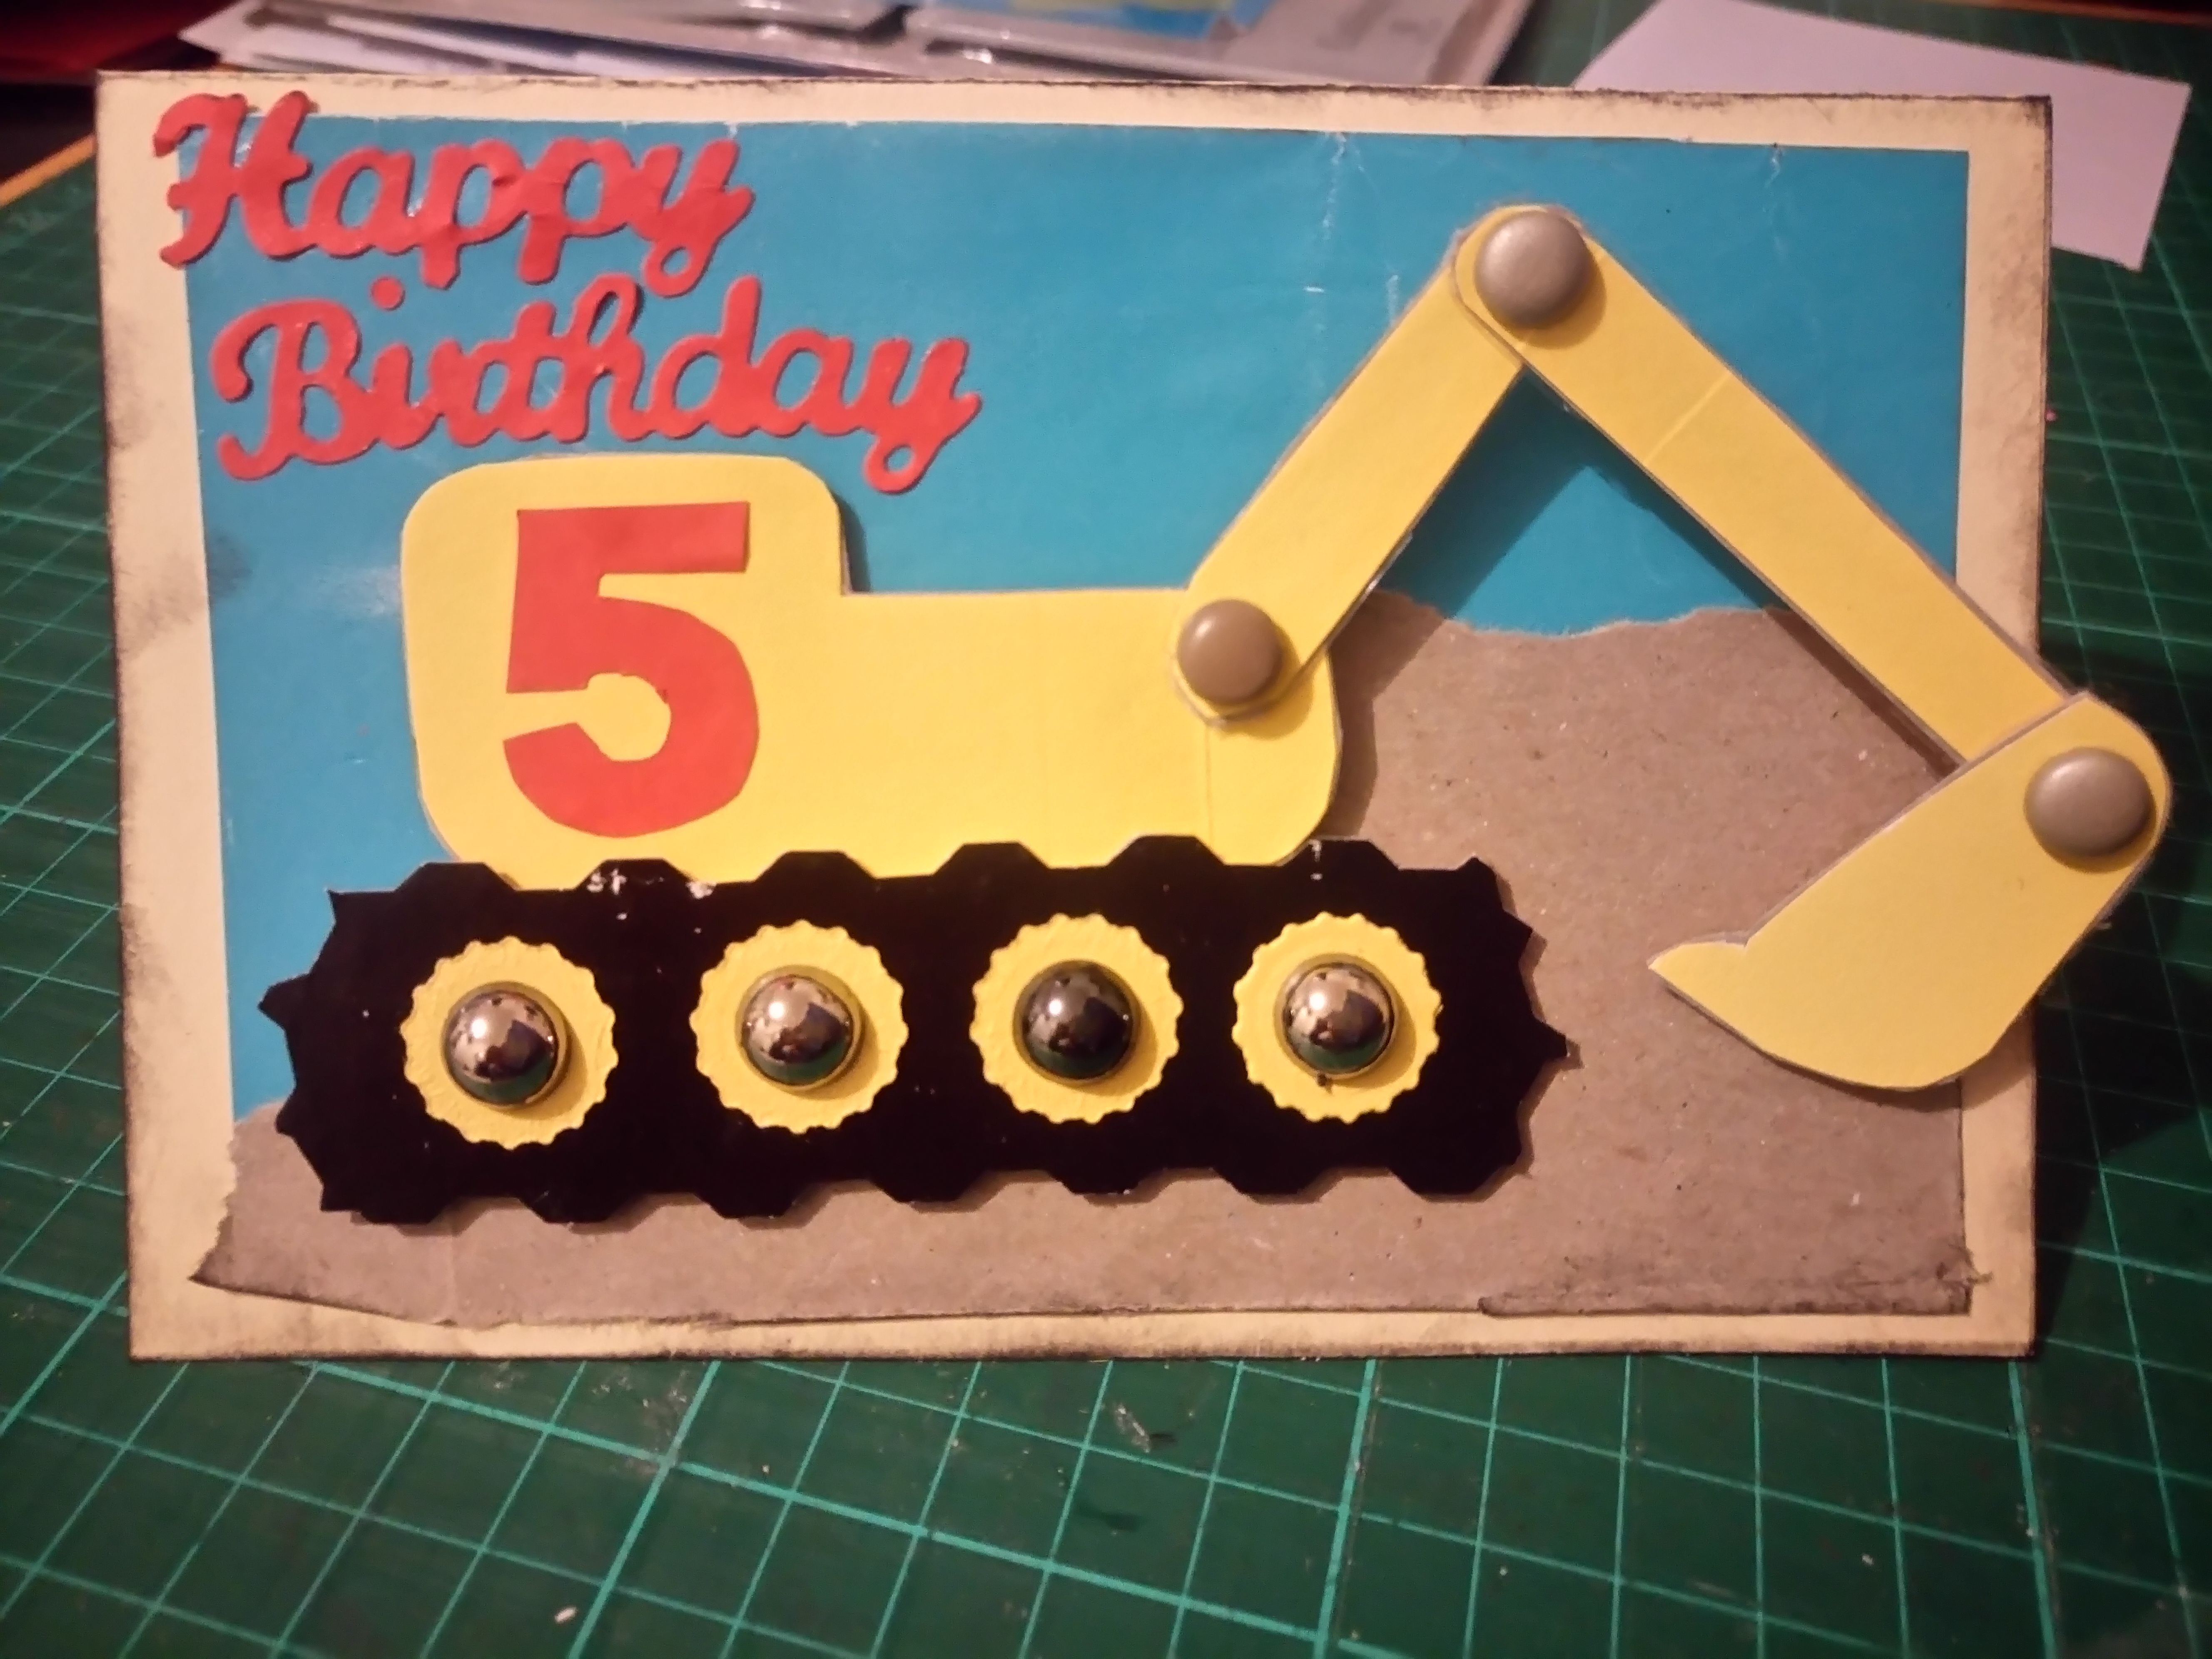 Excavator Digger Card With Moving Parts For 5th Birthday Hand Made By Michelle Walker Birthday Cards For Boys Kids Cards Cards Handmade